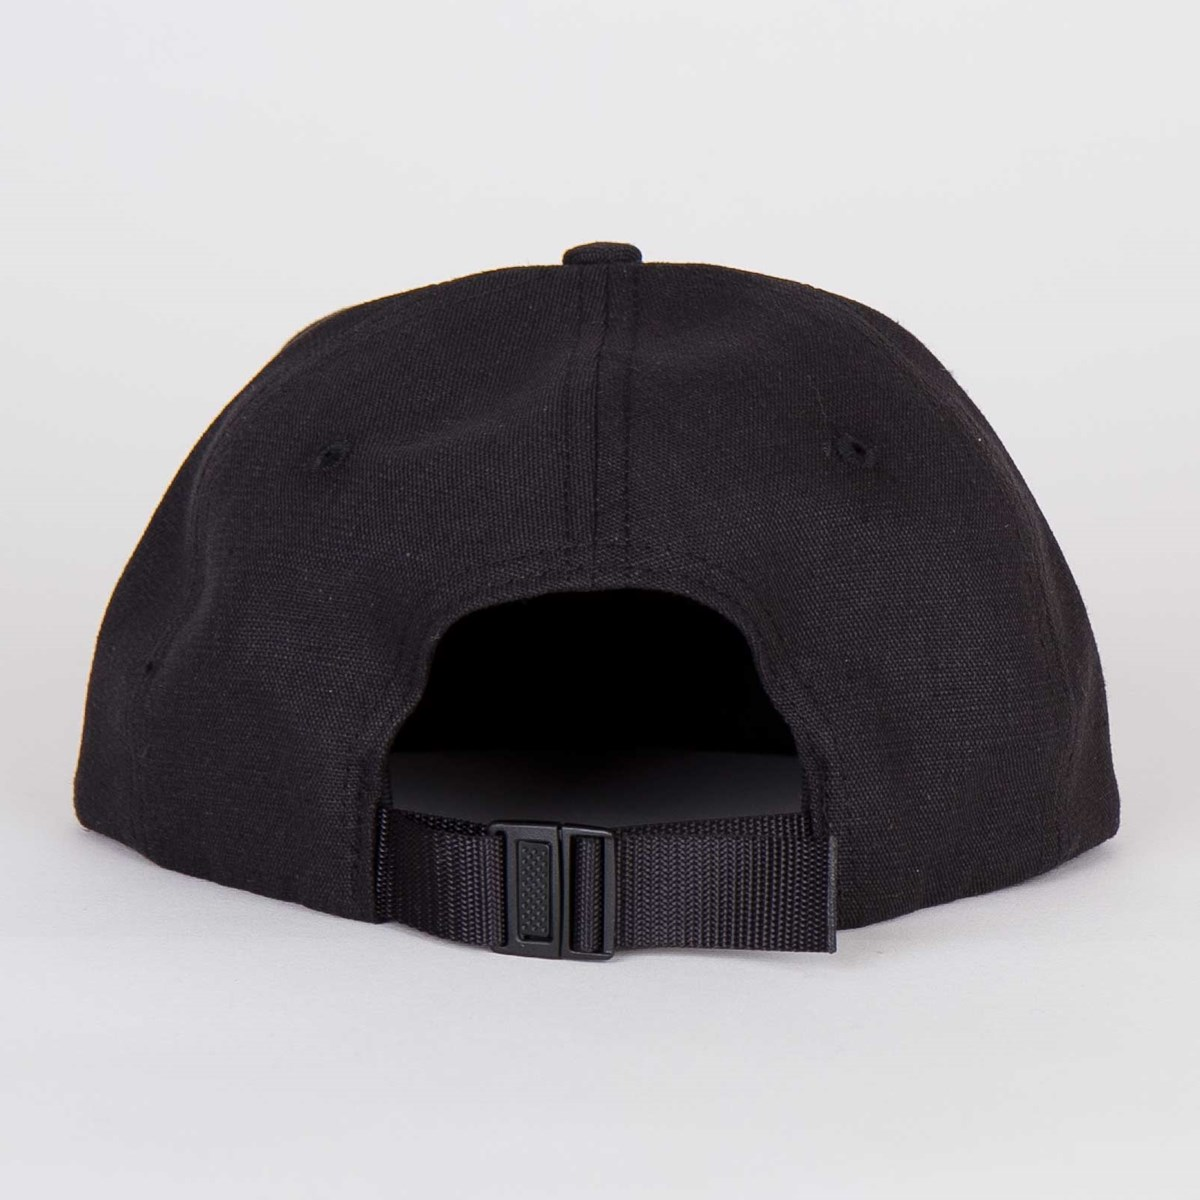 b6a37fb31be Norse Projects Linen Flat Cap - N60-0123-9999 - Sneakersnstuff ...